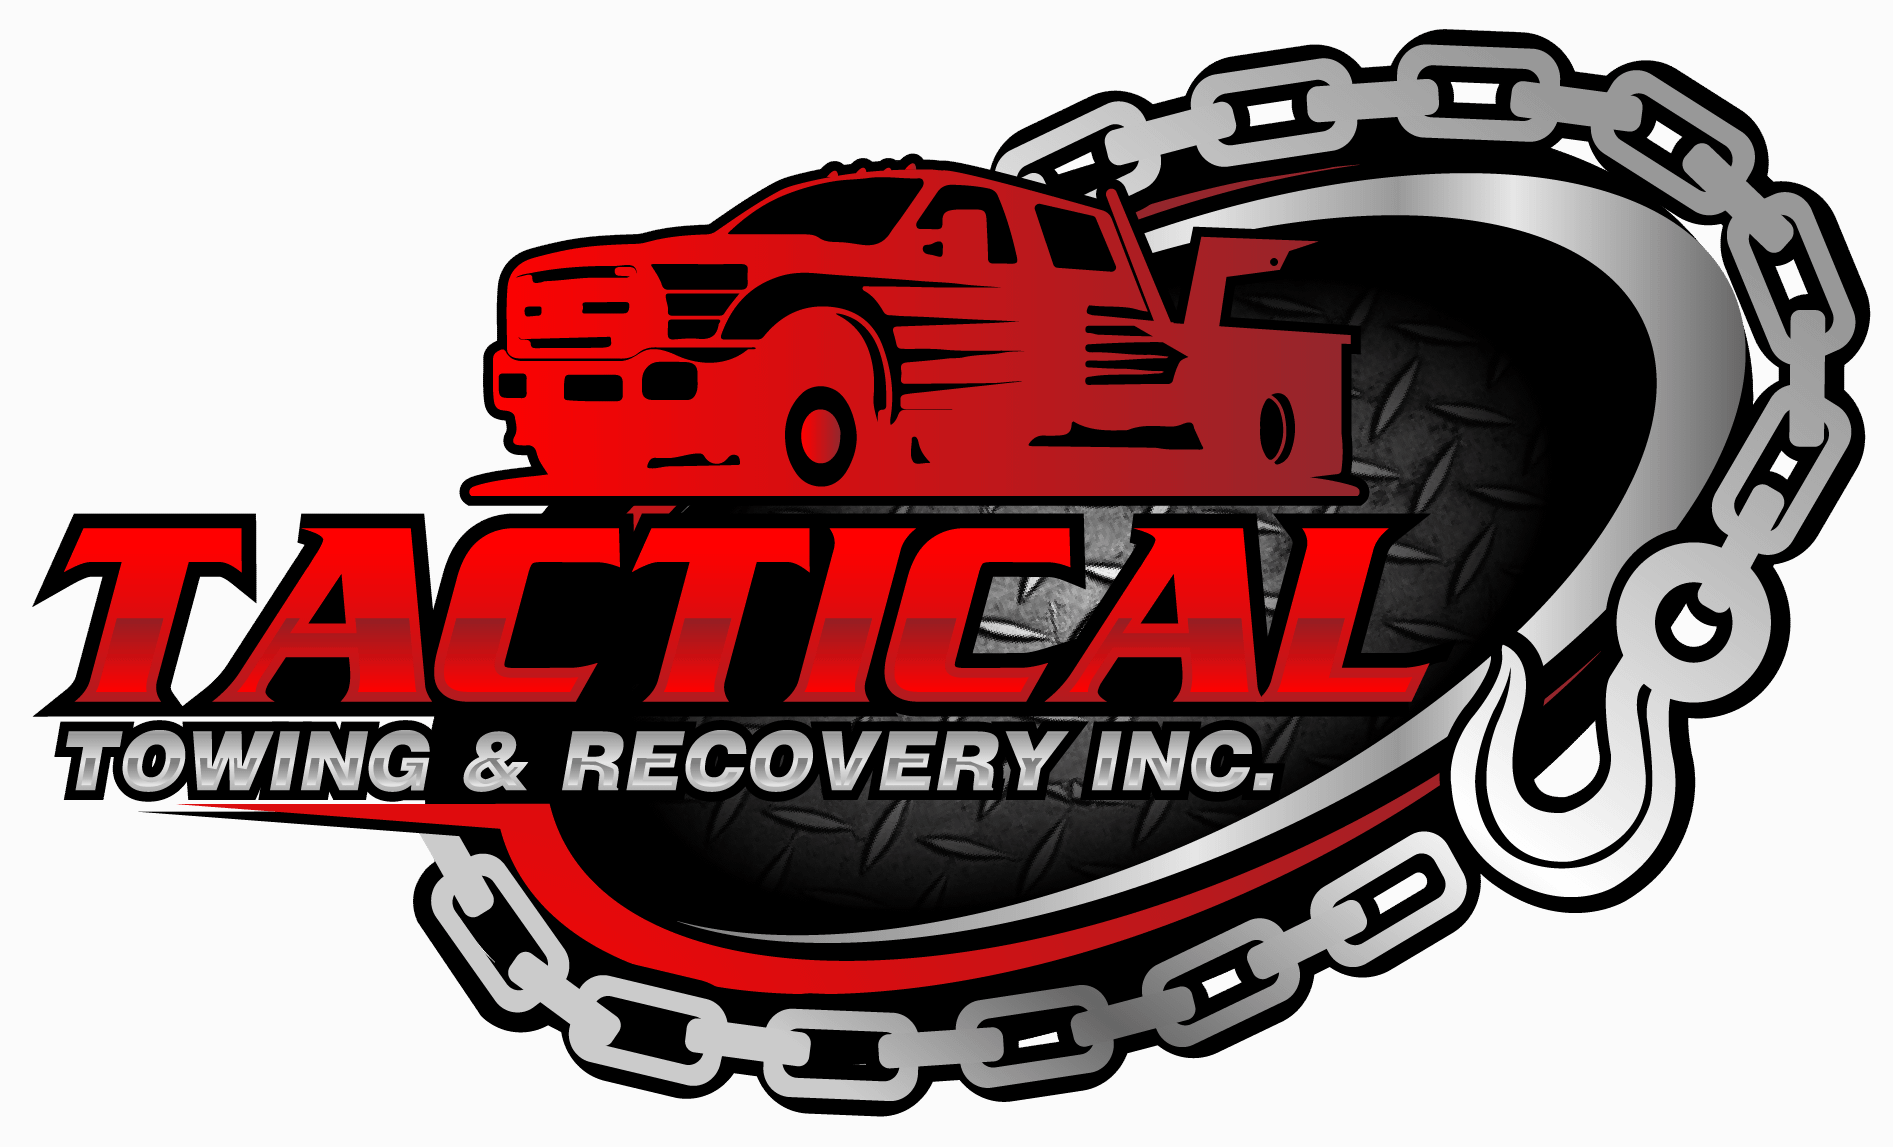 Tactical Towing & Recovery, Inc.